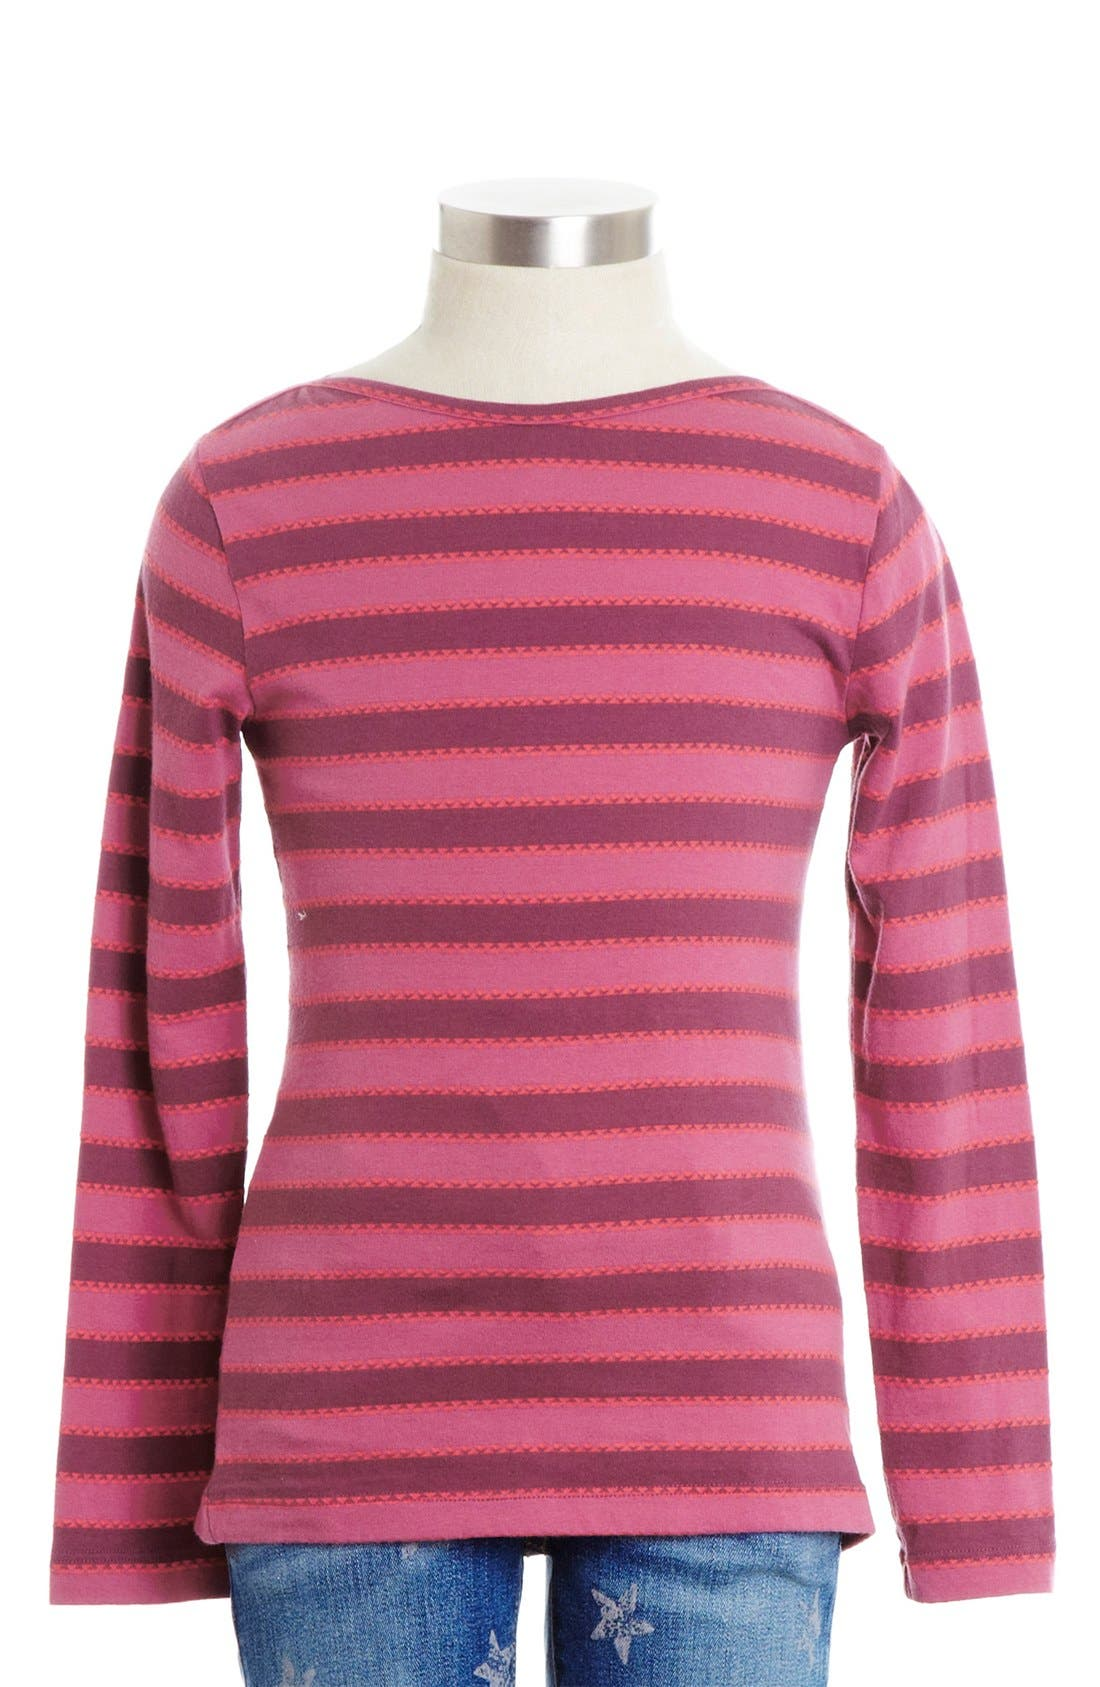 Alternate Image 1 Selected - Peek 'Tide' Long Sleeve Tee (Toddler Girls, Little Girls & Big Girls)